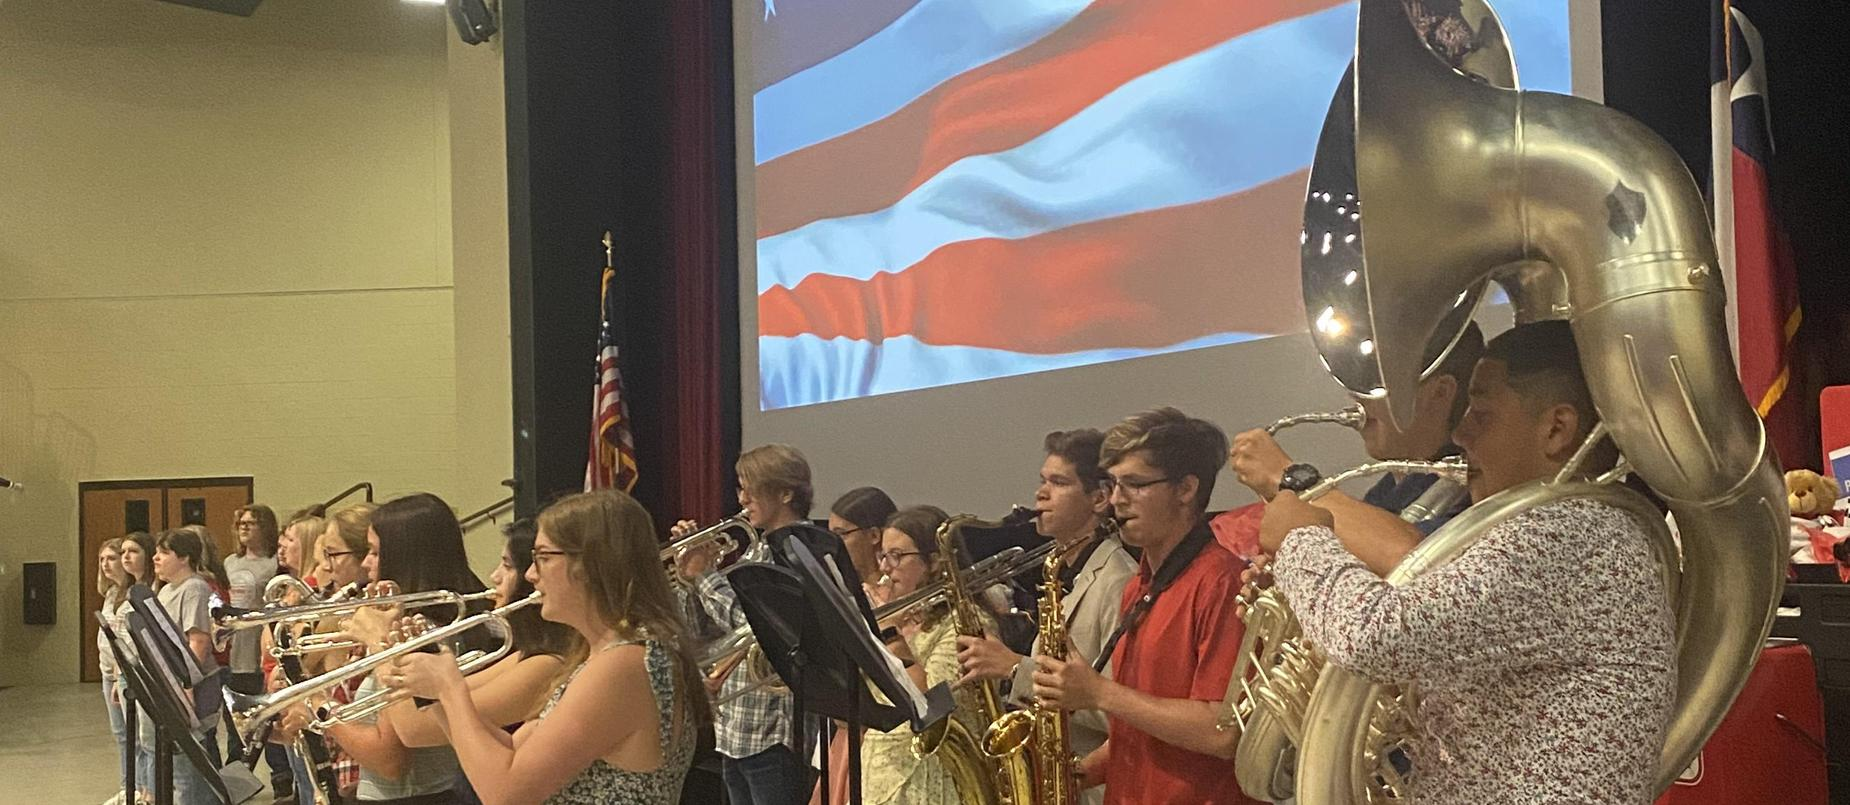 National Anthem - Performed by LHS Band and Choir